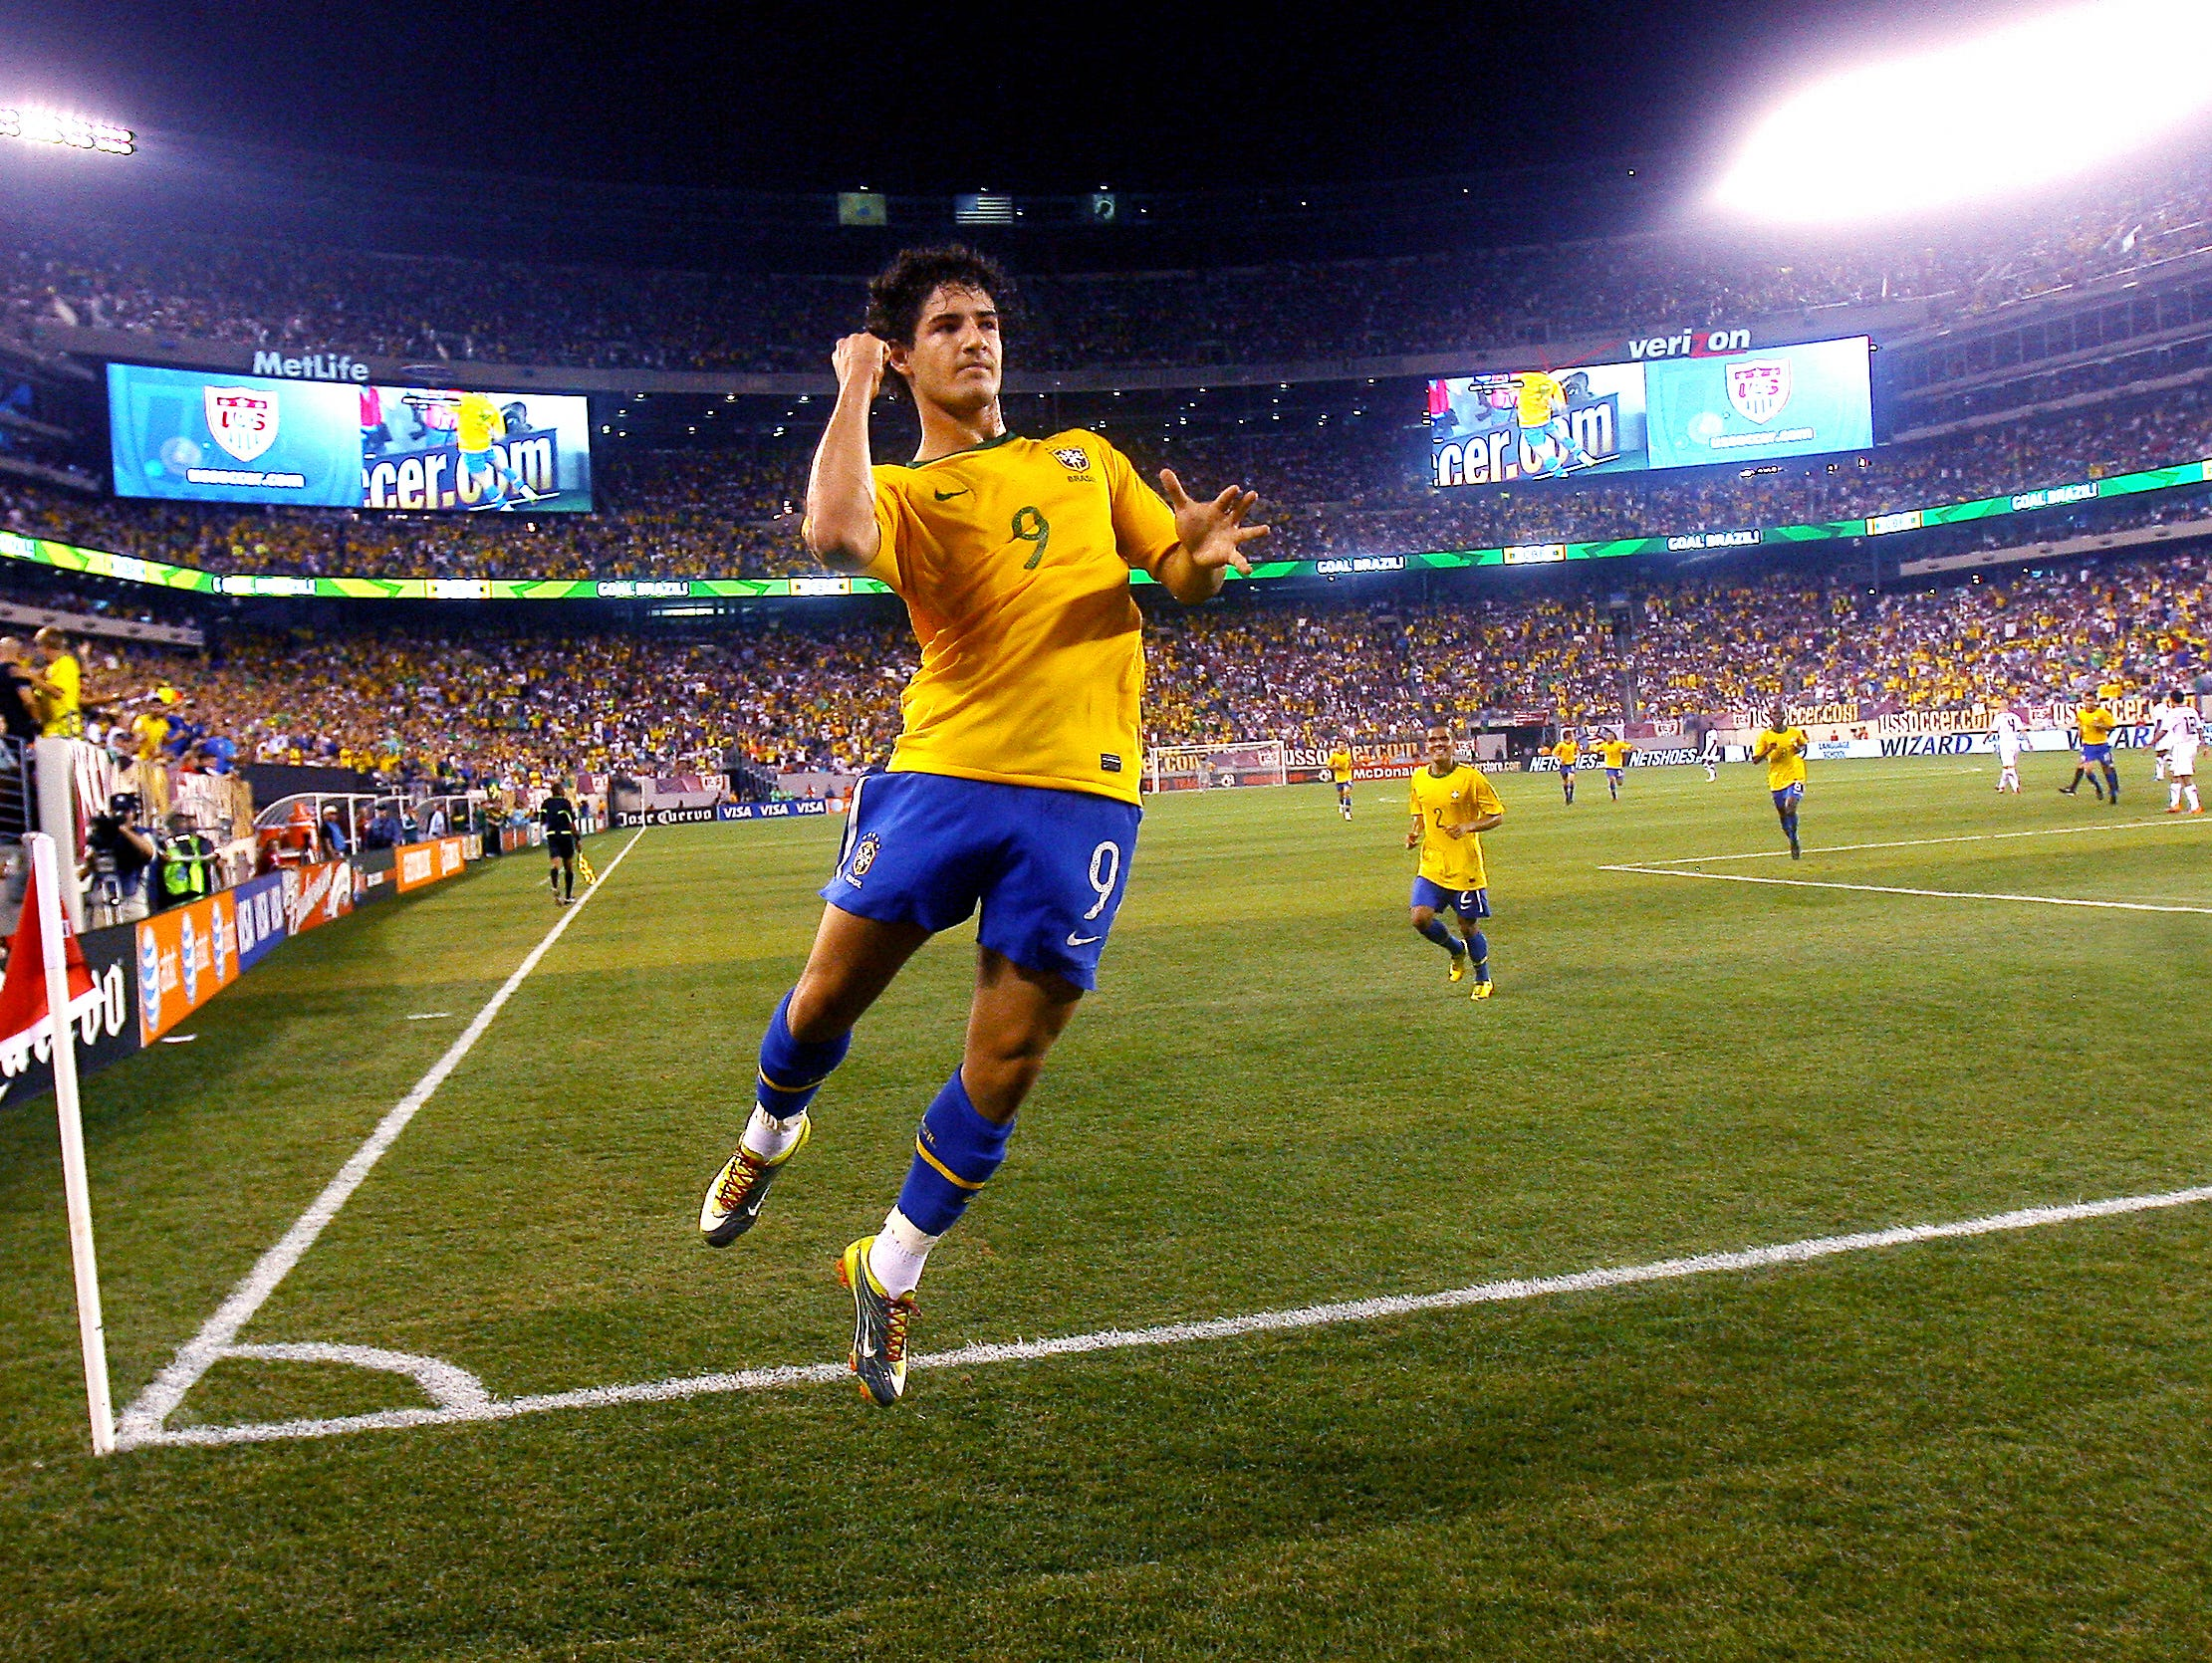 Pato, a striker for Brazil celebrates his first ever goal for the Brazilian National team at New Meadowlands Stadium vs the United States National Team.